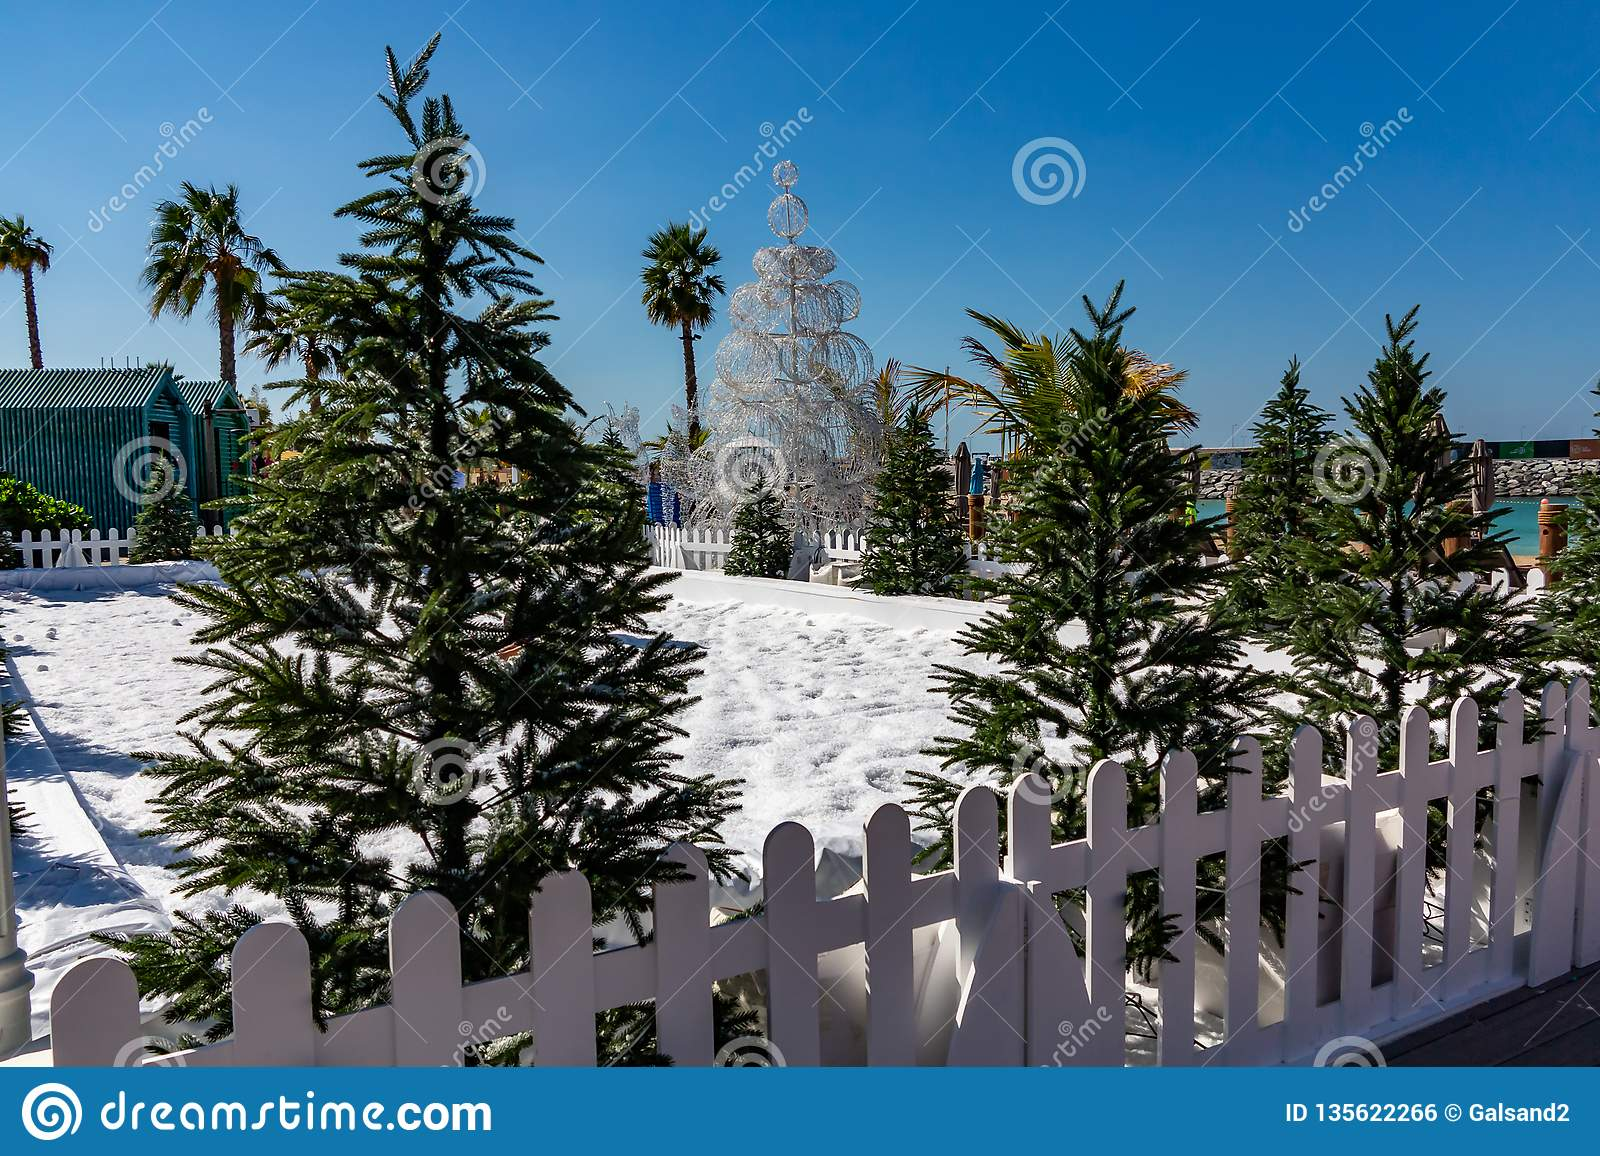 Artificial snow and Christmas trees at the resort - winter and Christmas in hot countries concept